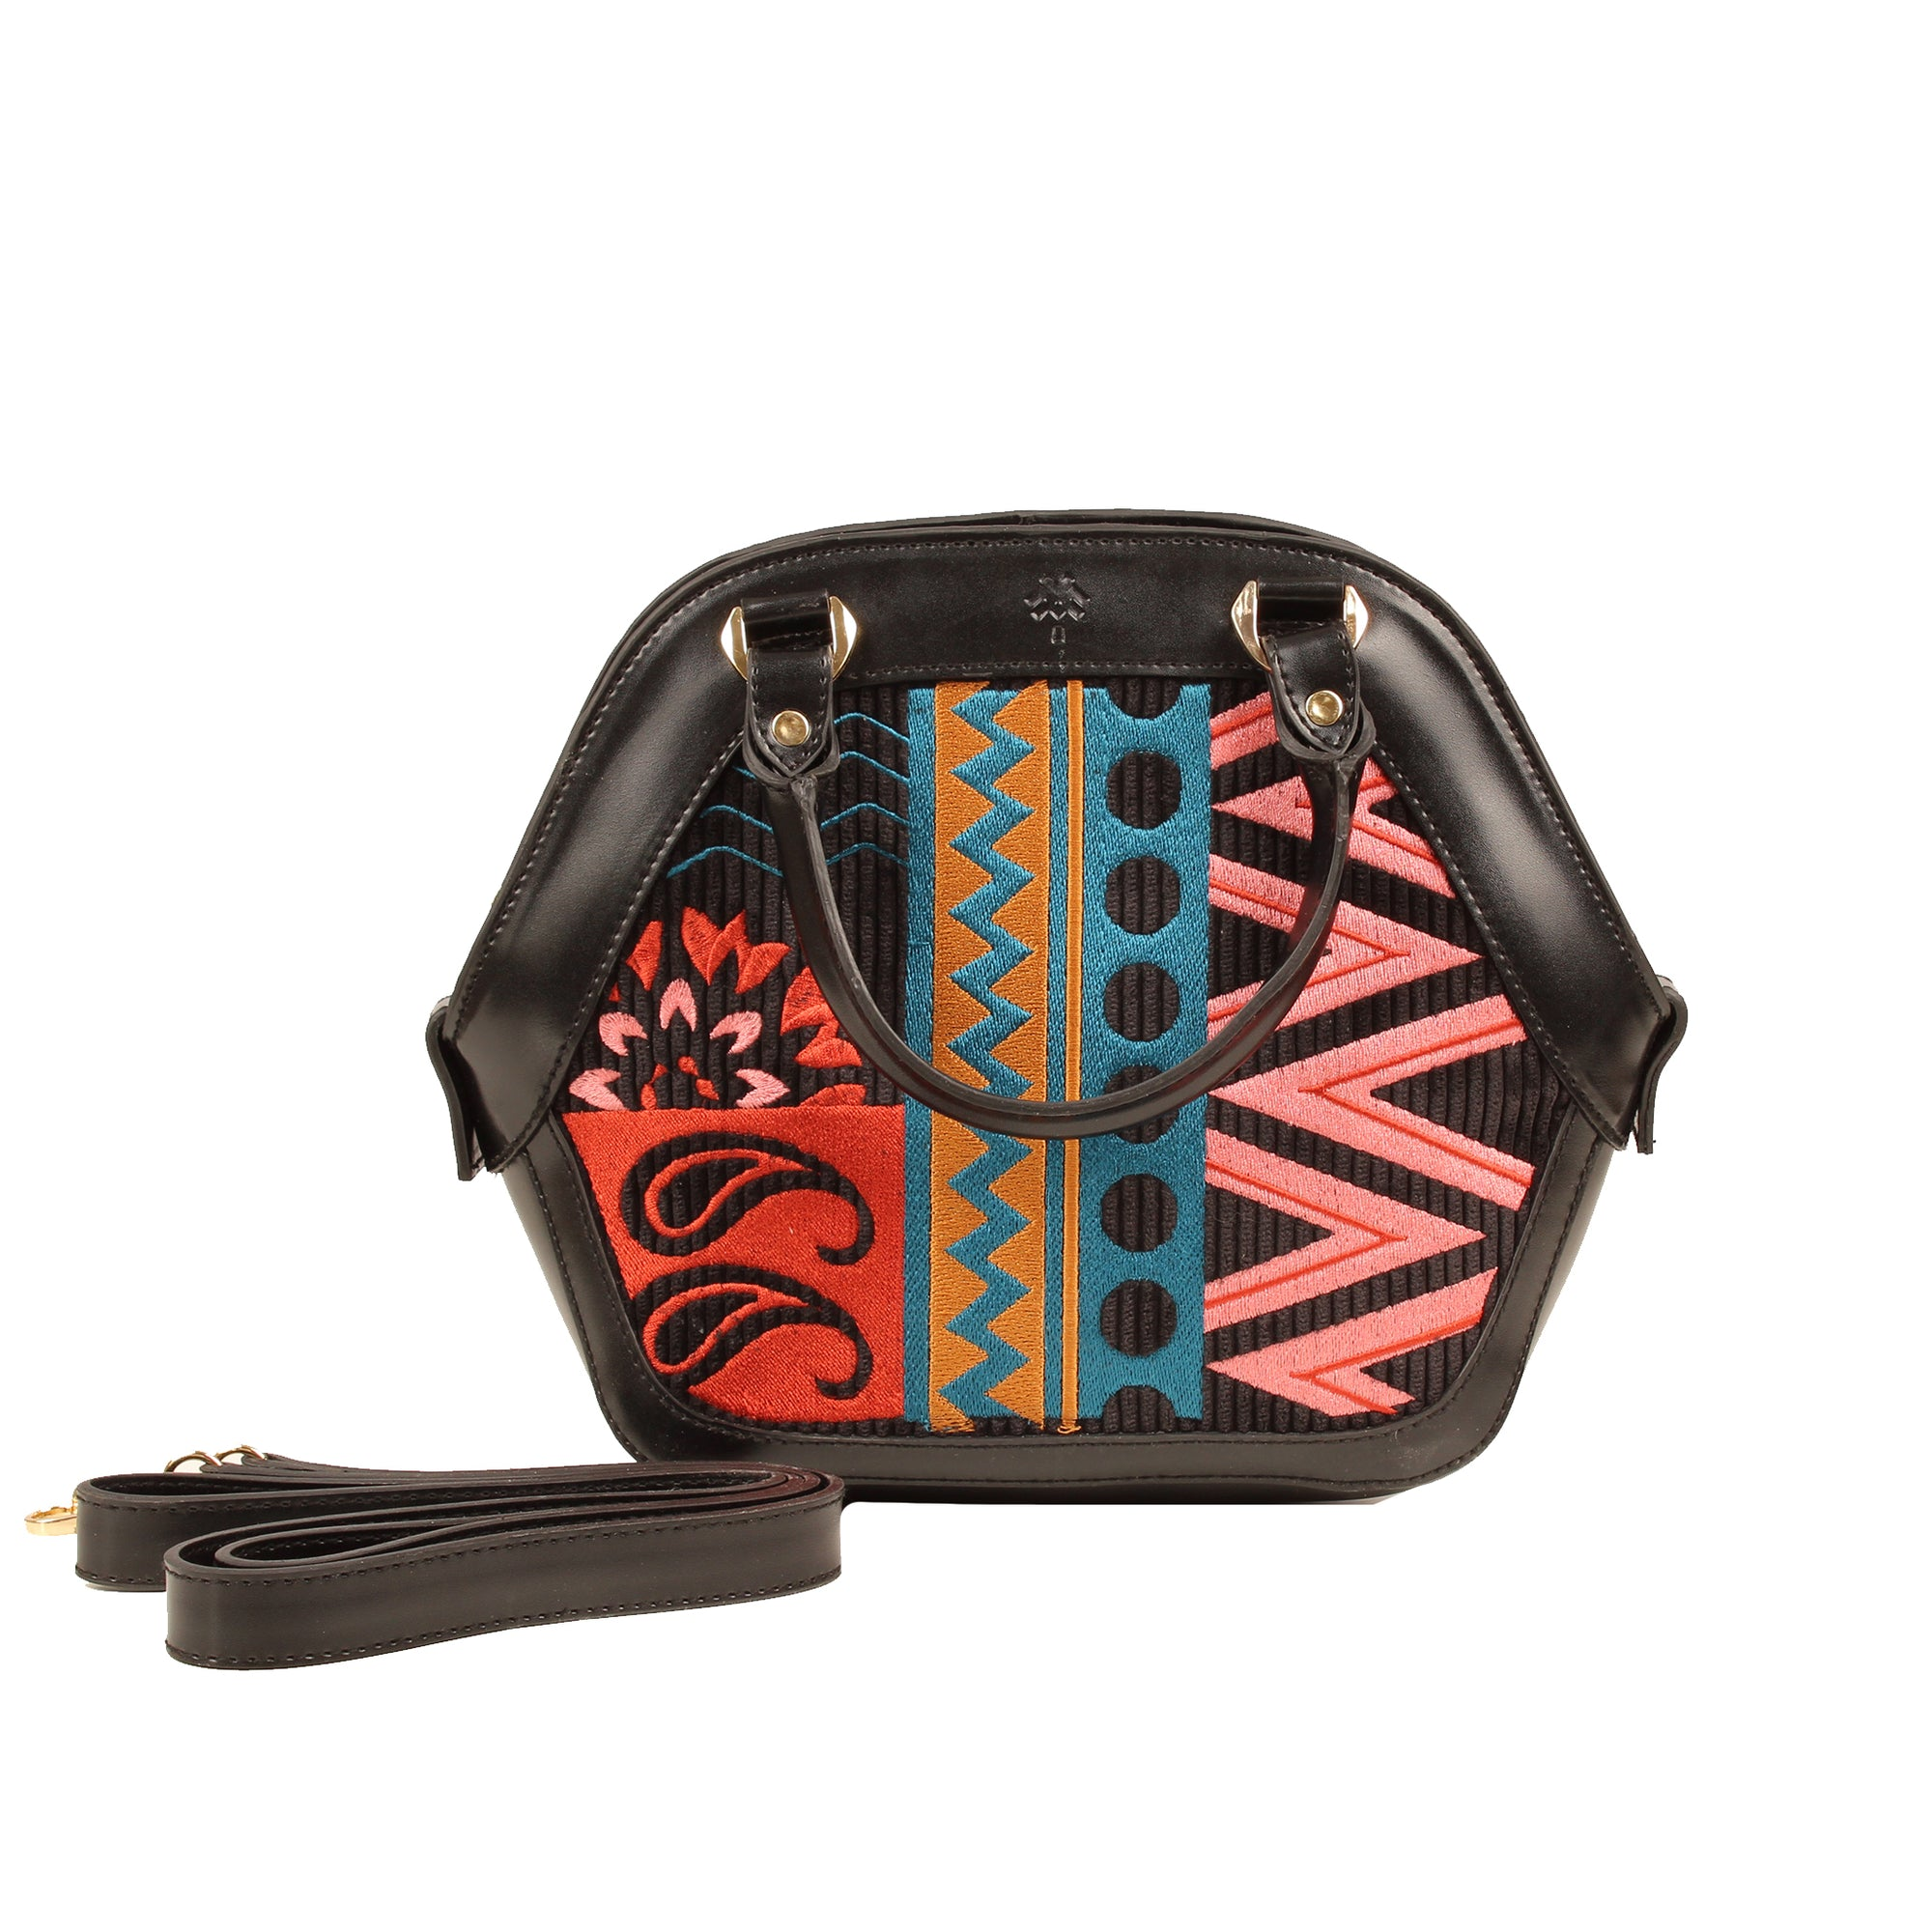 Aulora Patterned Bag Black